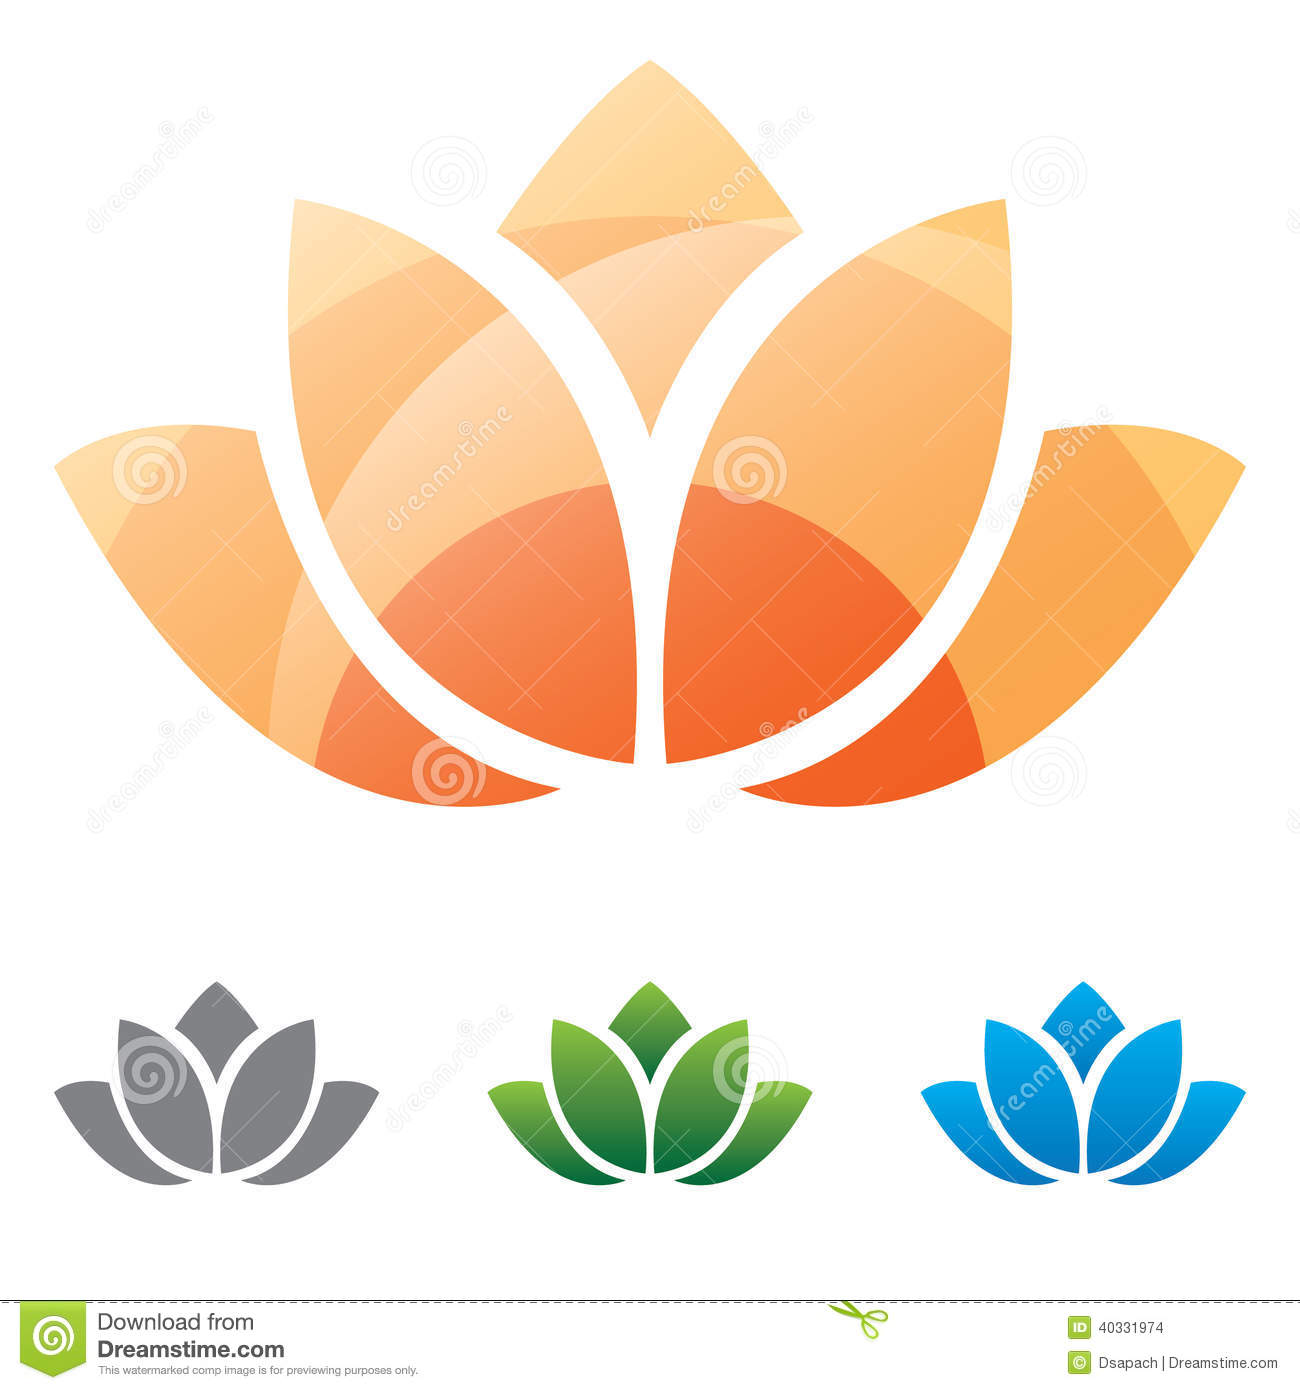 Lotus Flower Silhouette Vector